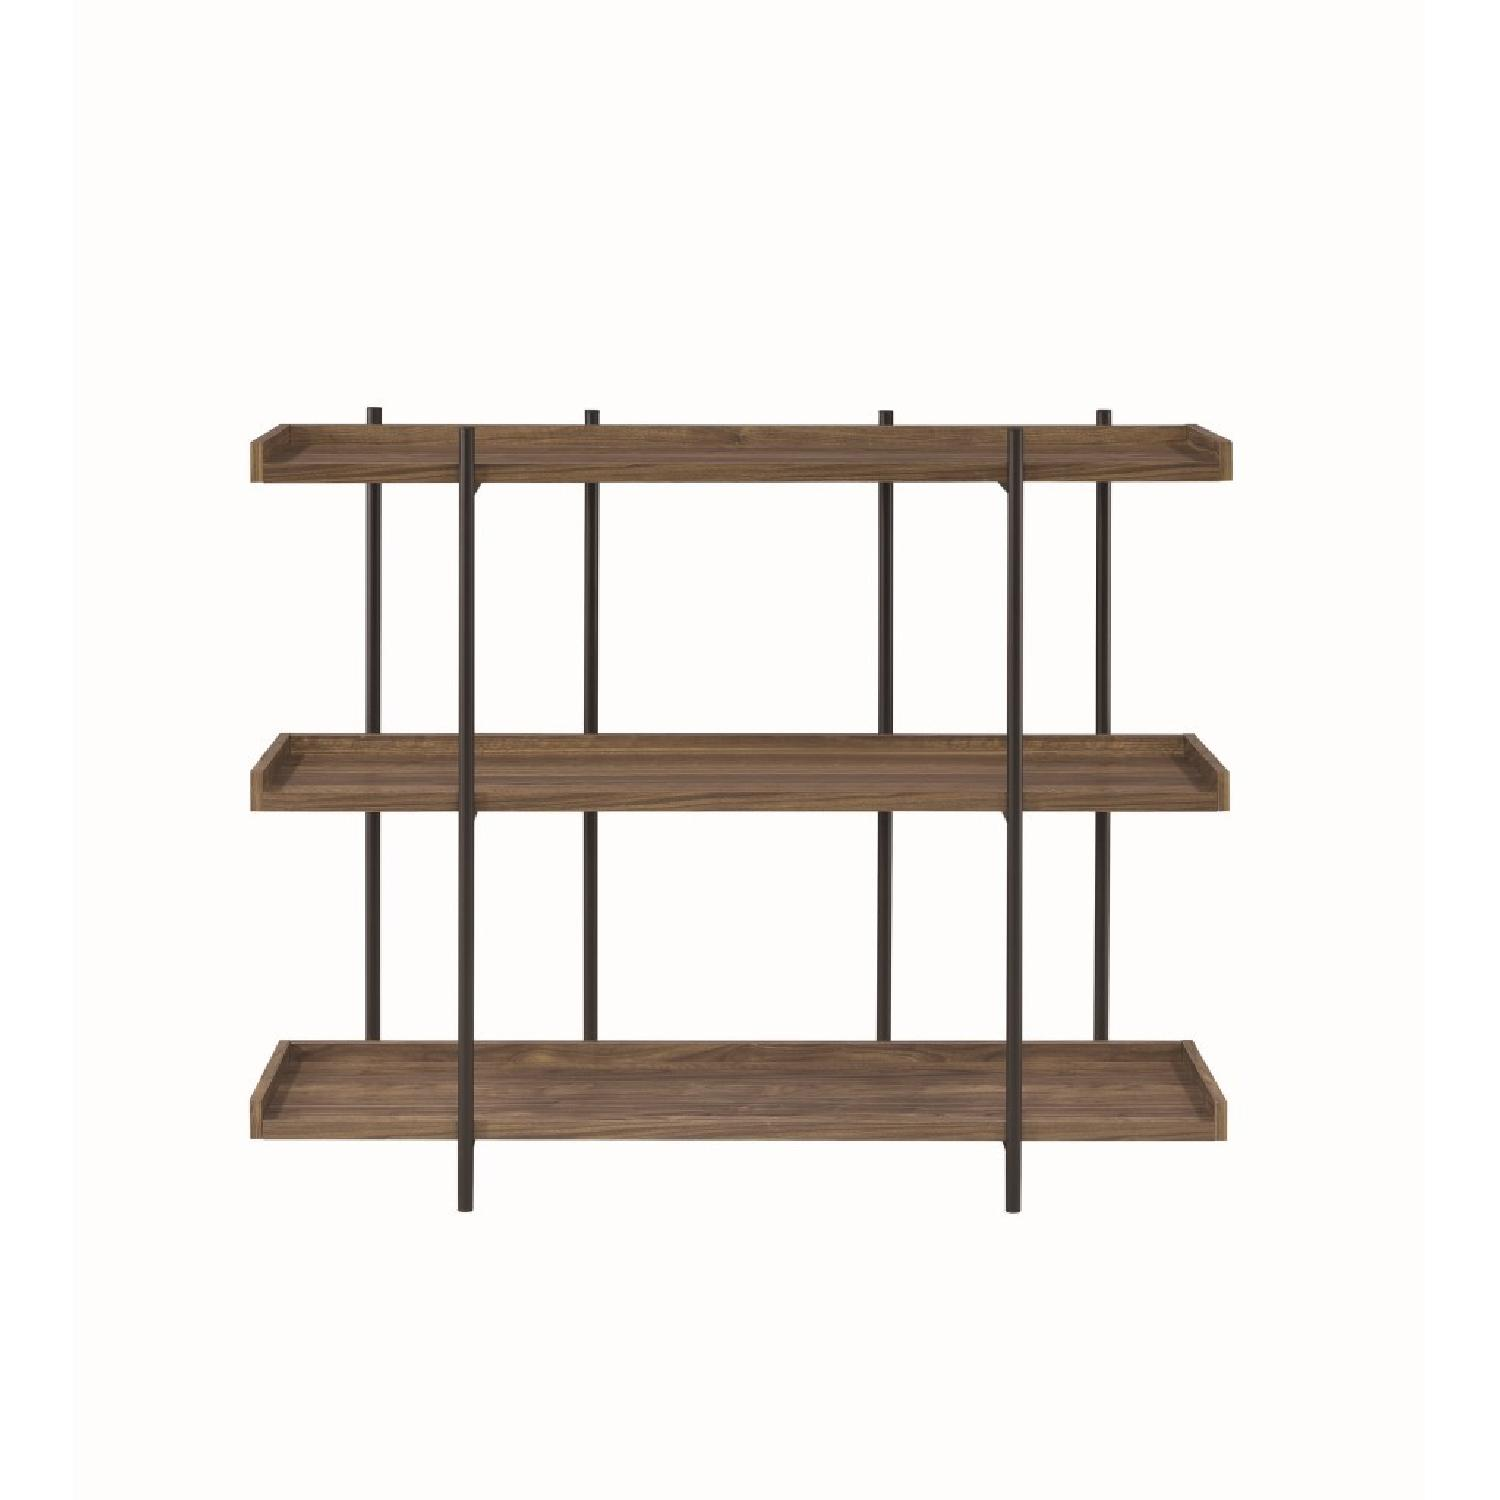 Industrial Style 5-Shelves Bookcase in Aged Walnut Finish - image-6